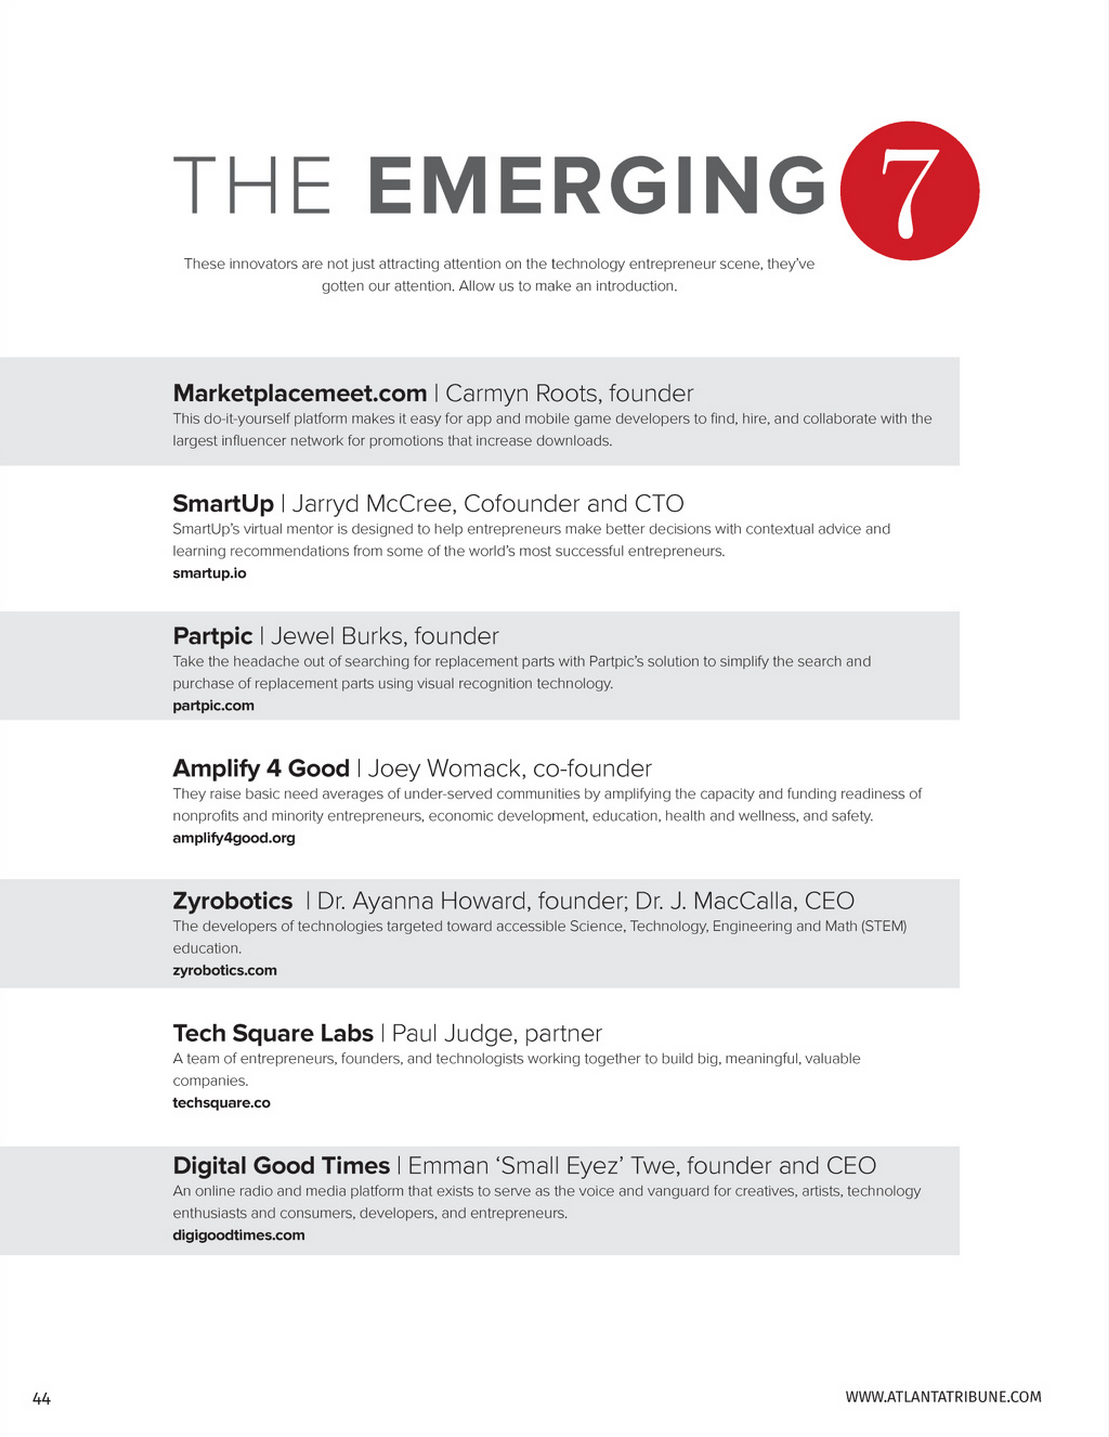 Emerging 7 of Atlanta ATribune 2015